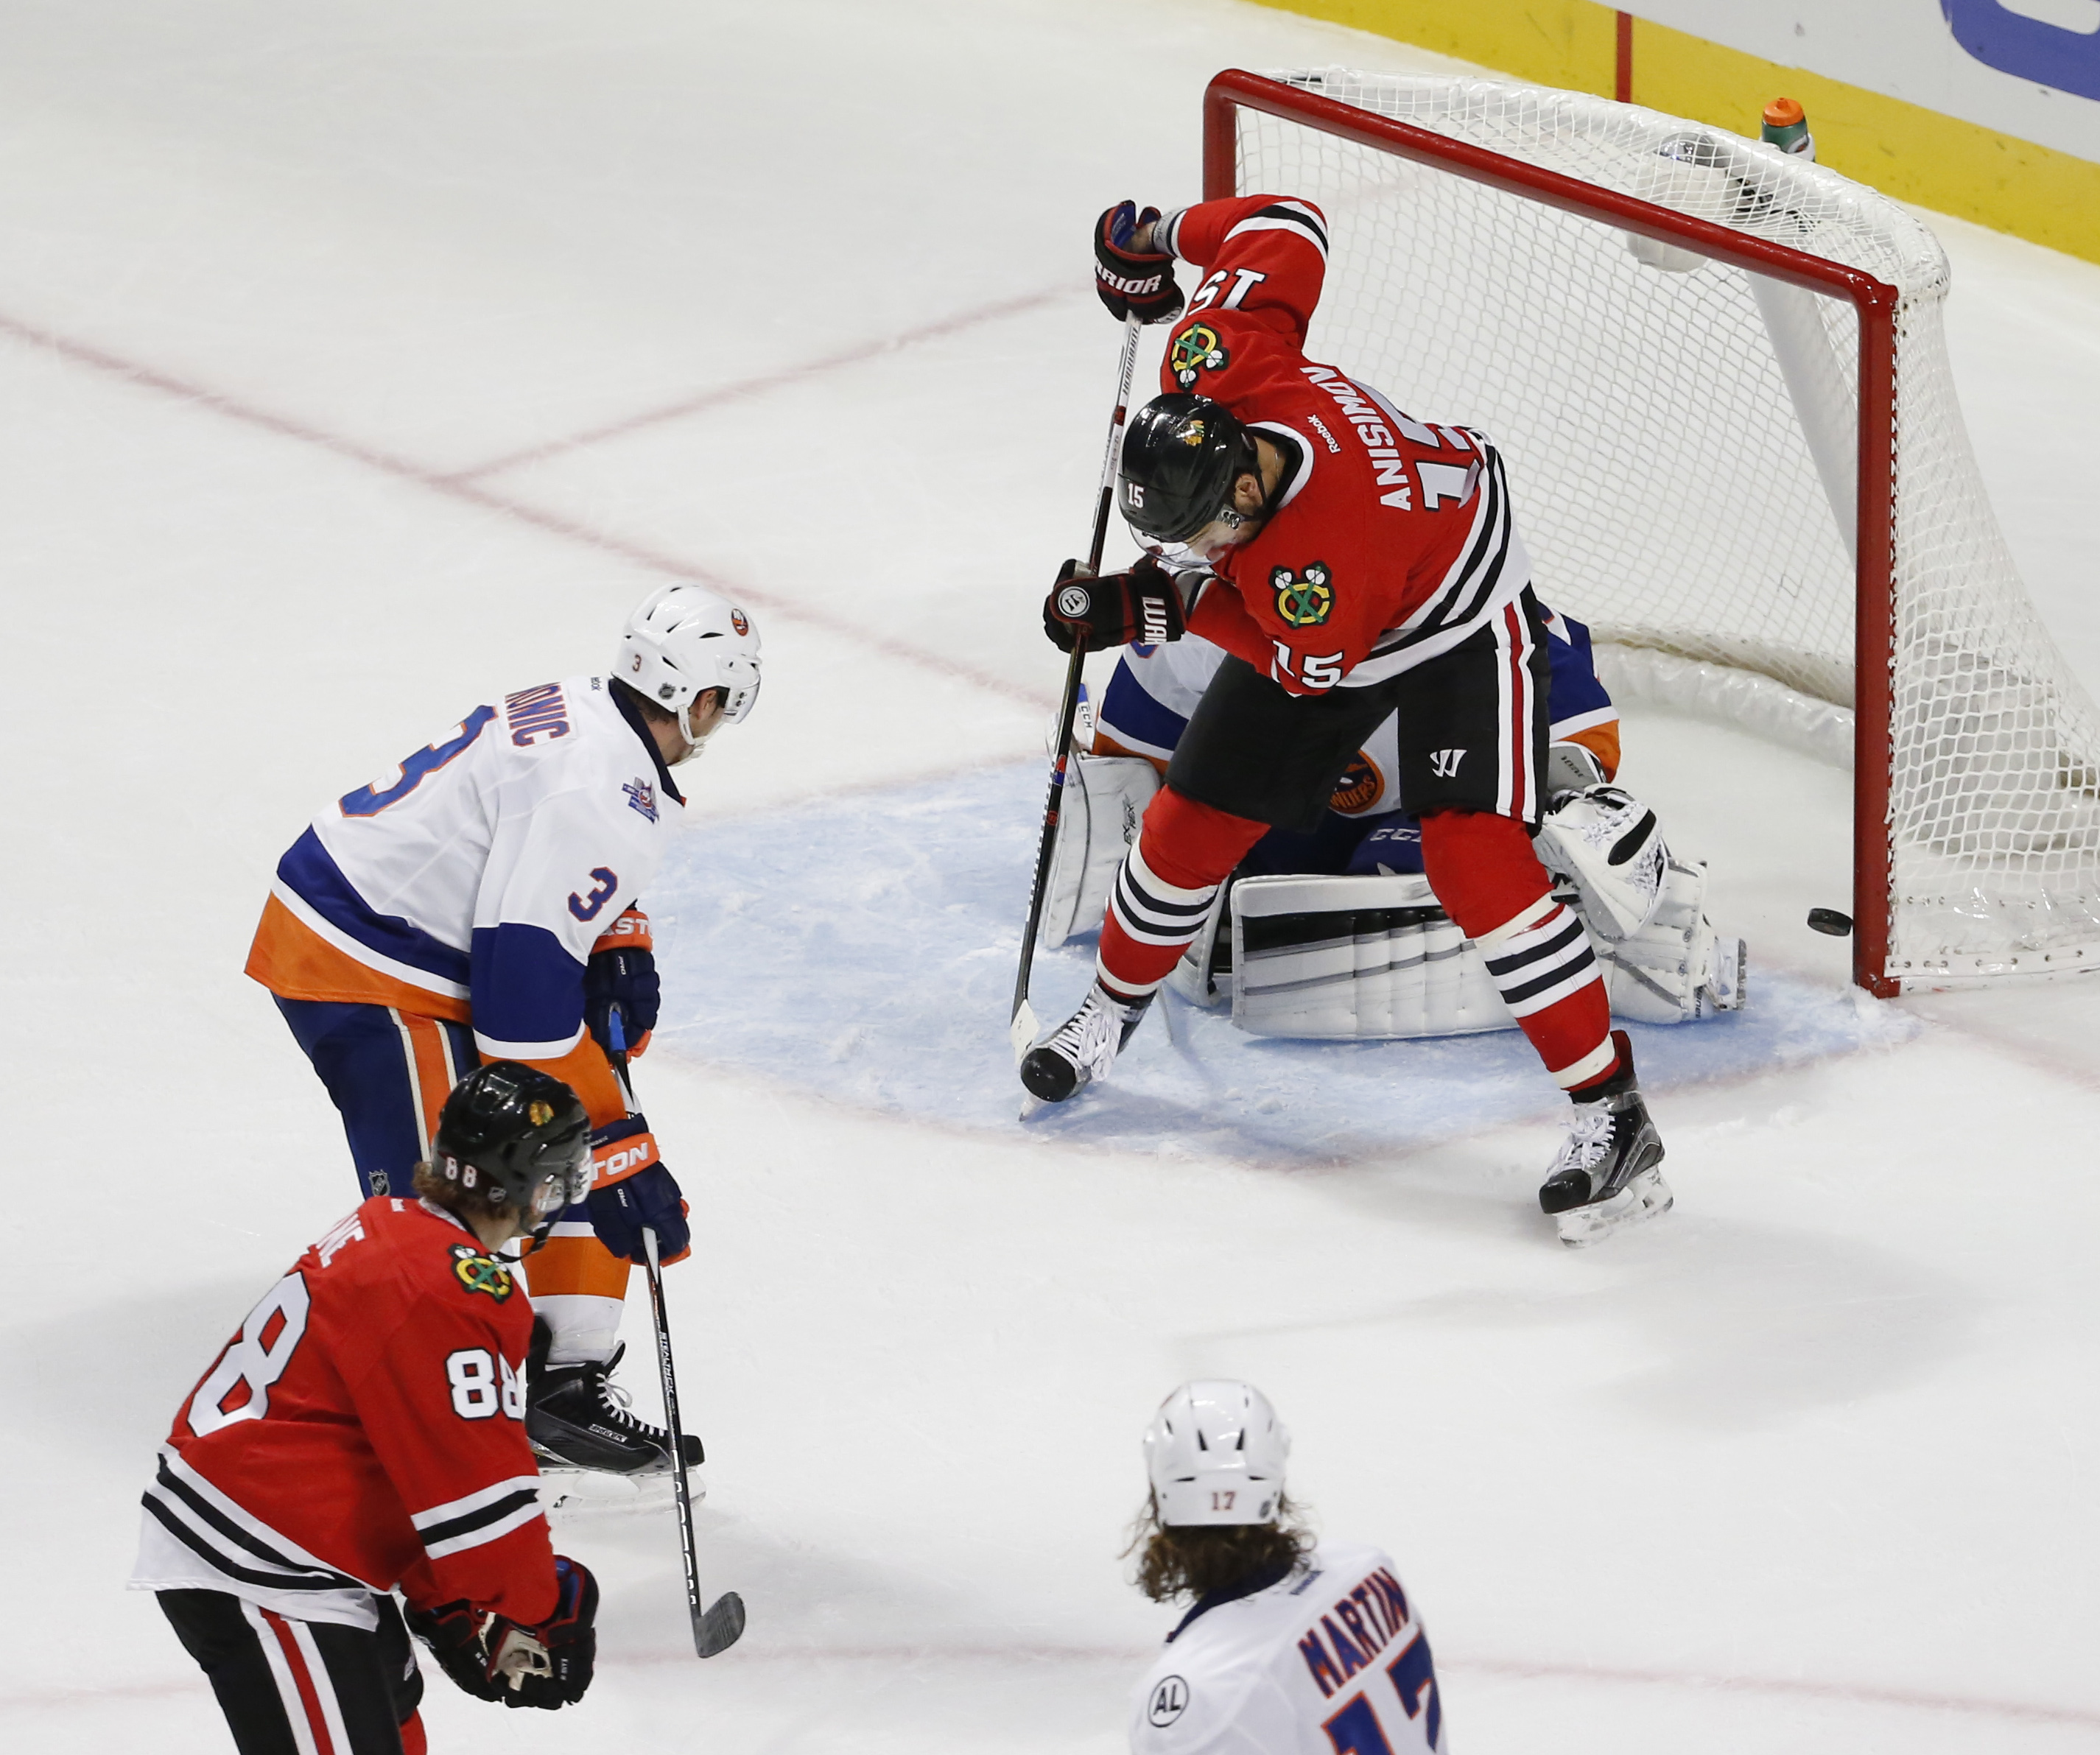 NHL: New York Islanders at Chicago Blackhawks